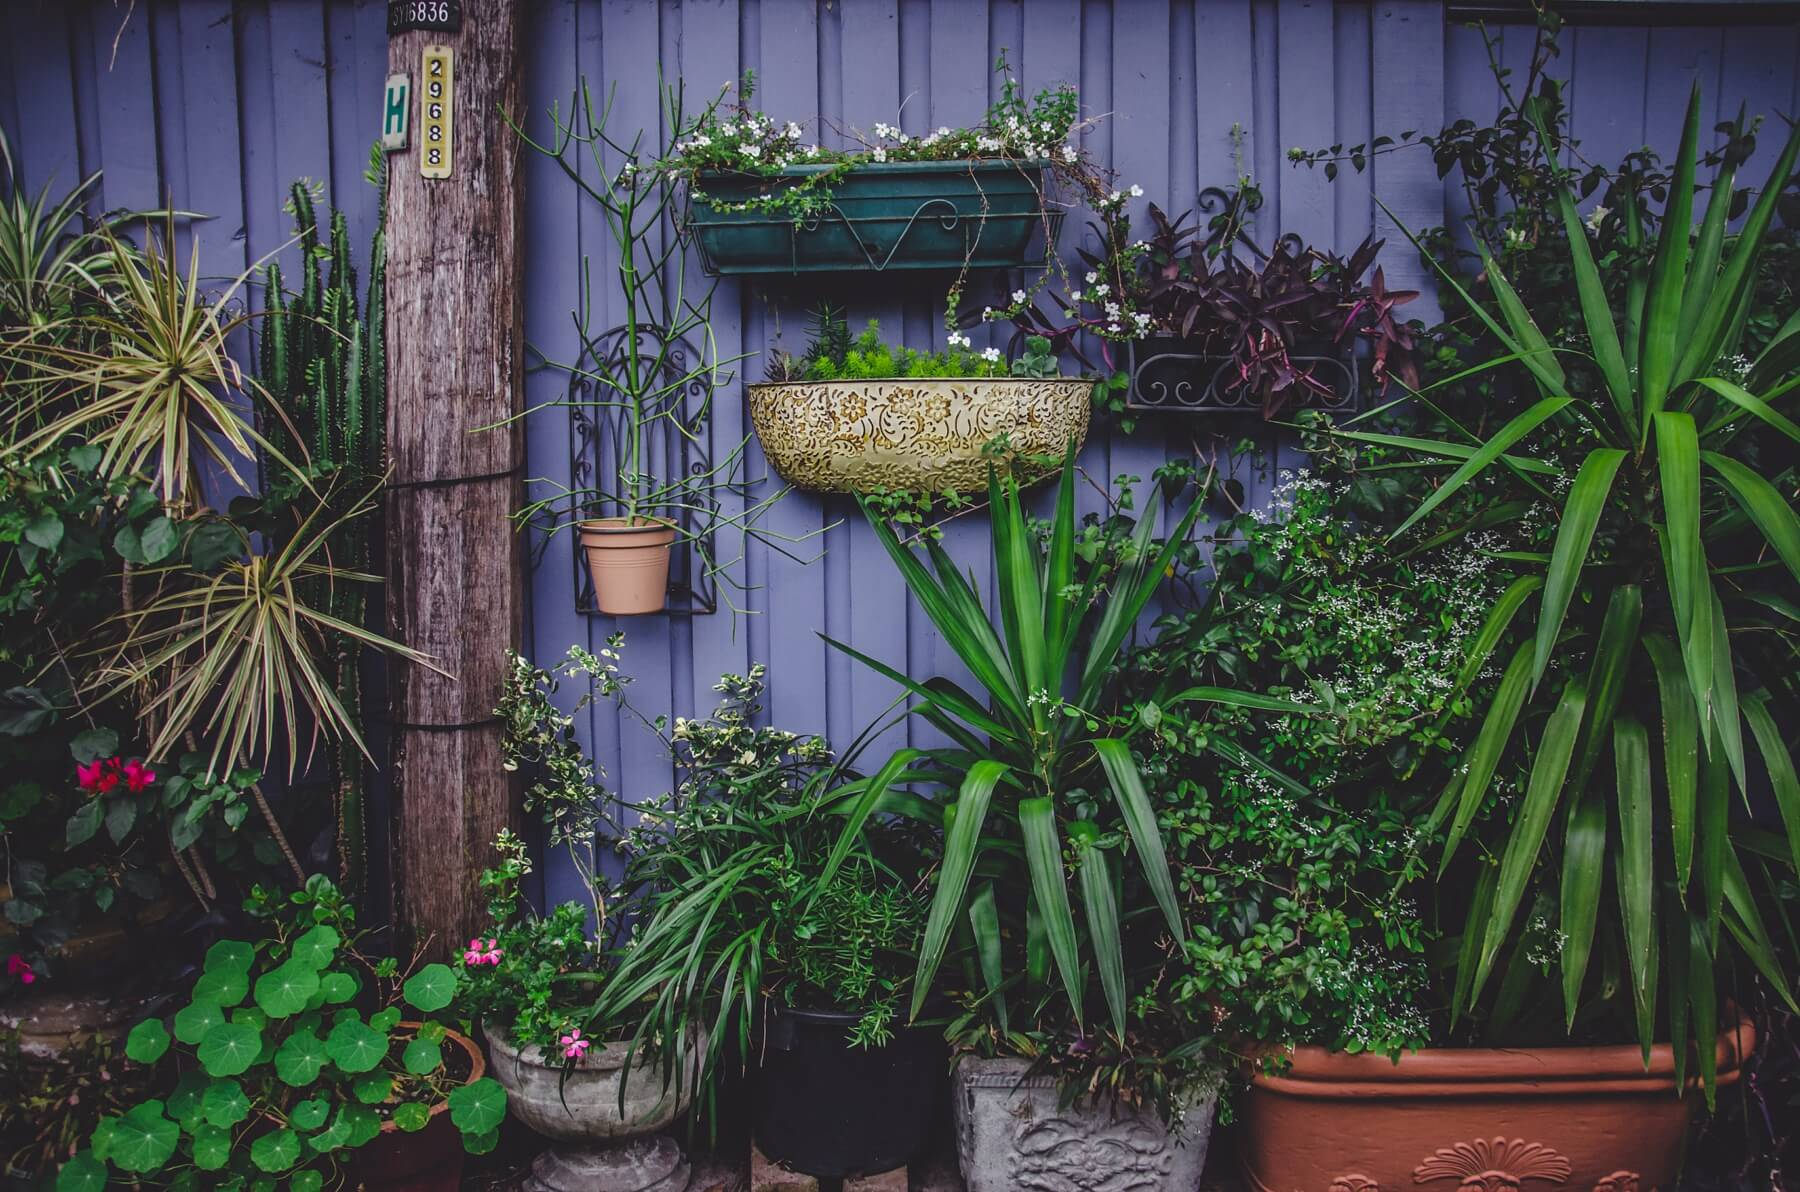 Or get wild and eclectic with your container gardening!